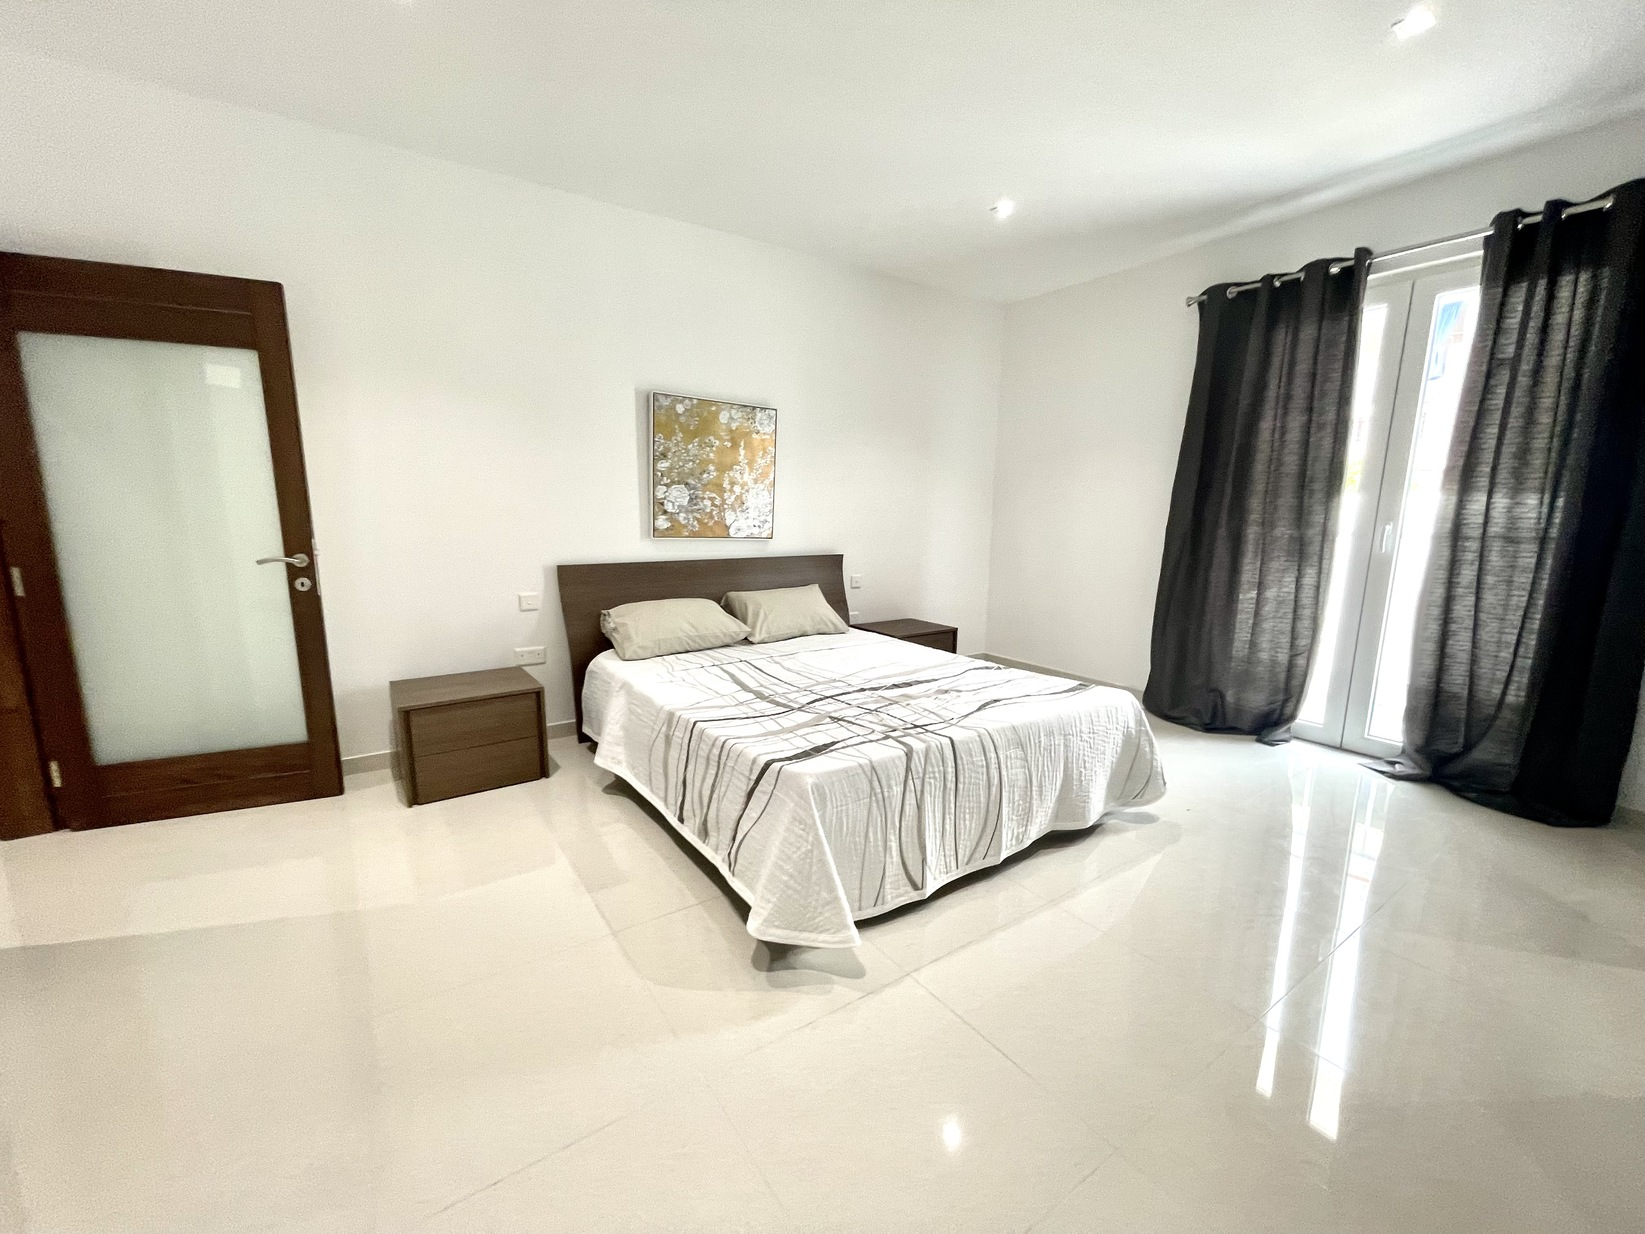 3 bed Apartment For Rent in Attard, Attard - thumb 9